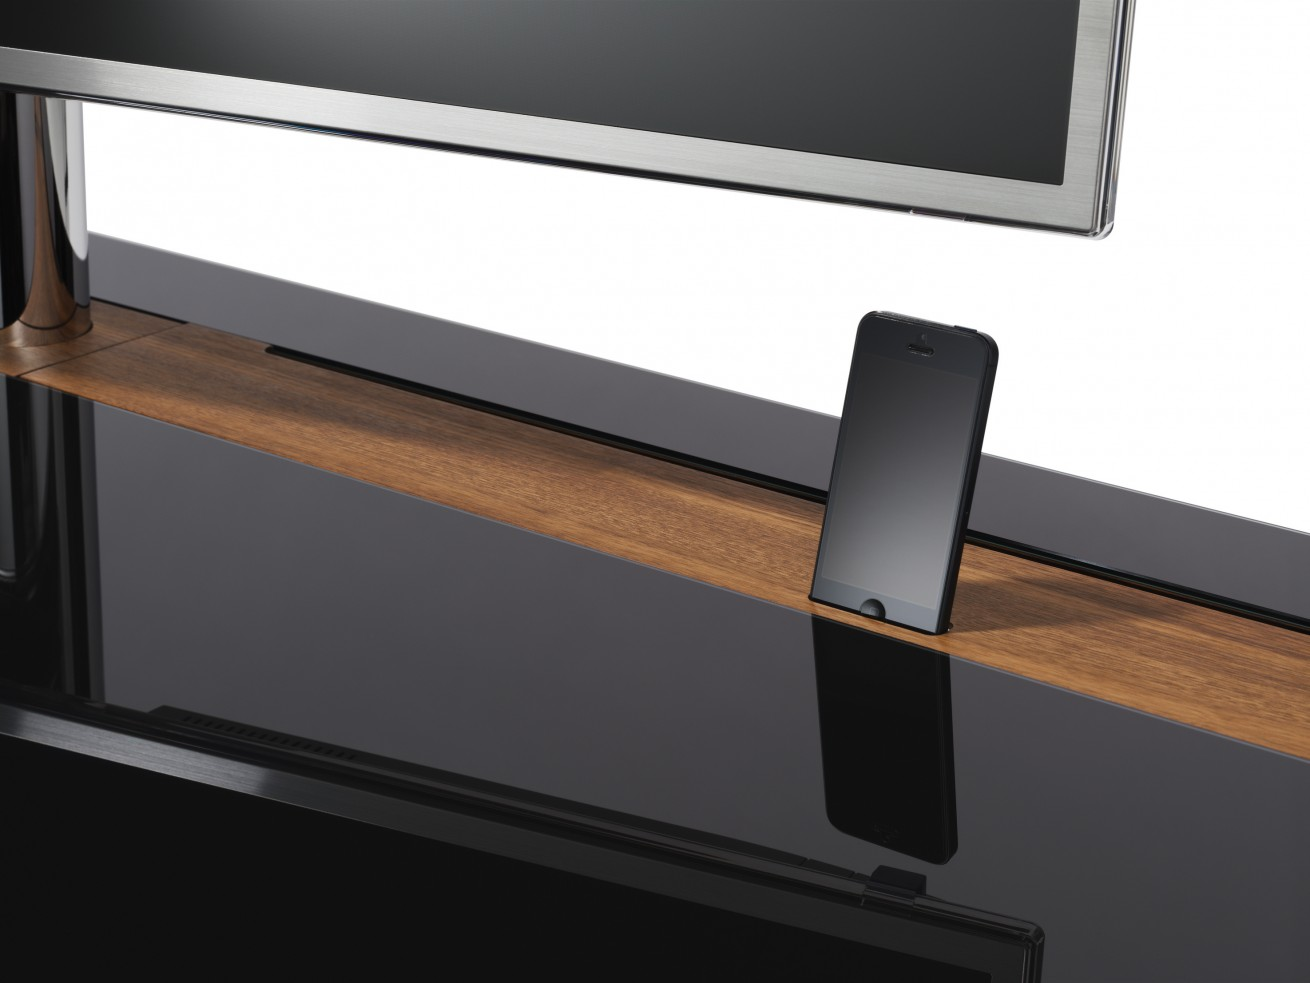 Home Entertainment mit Docking Station